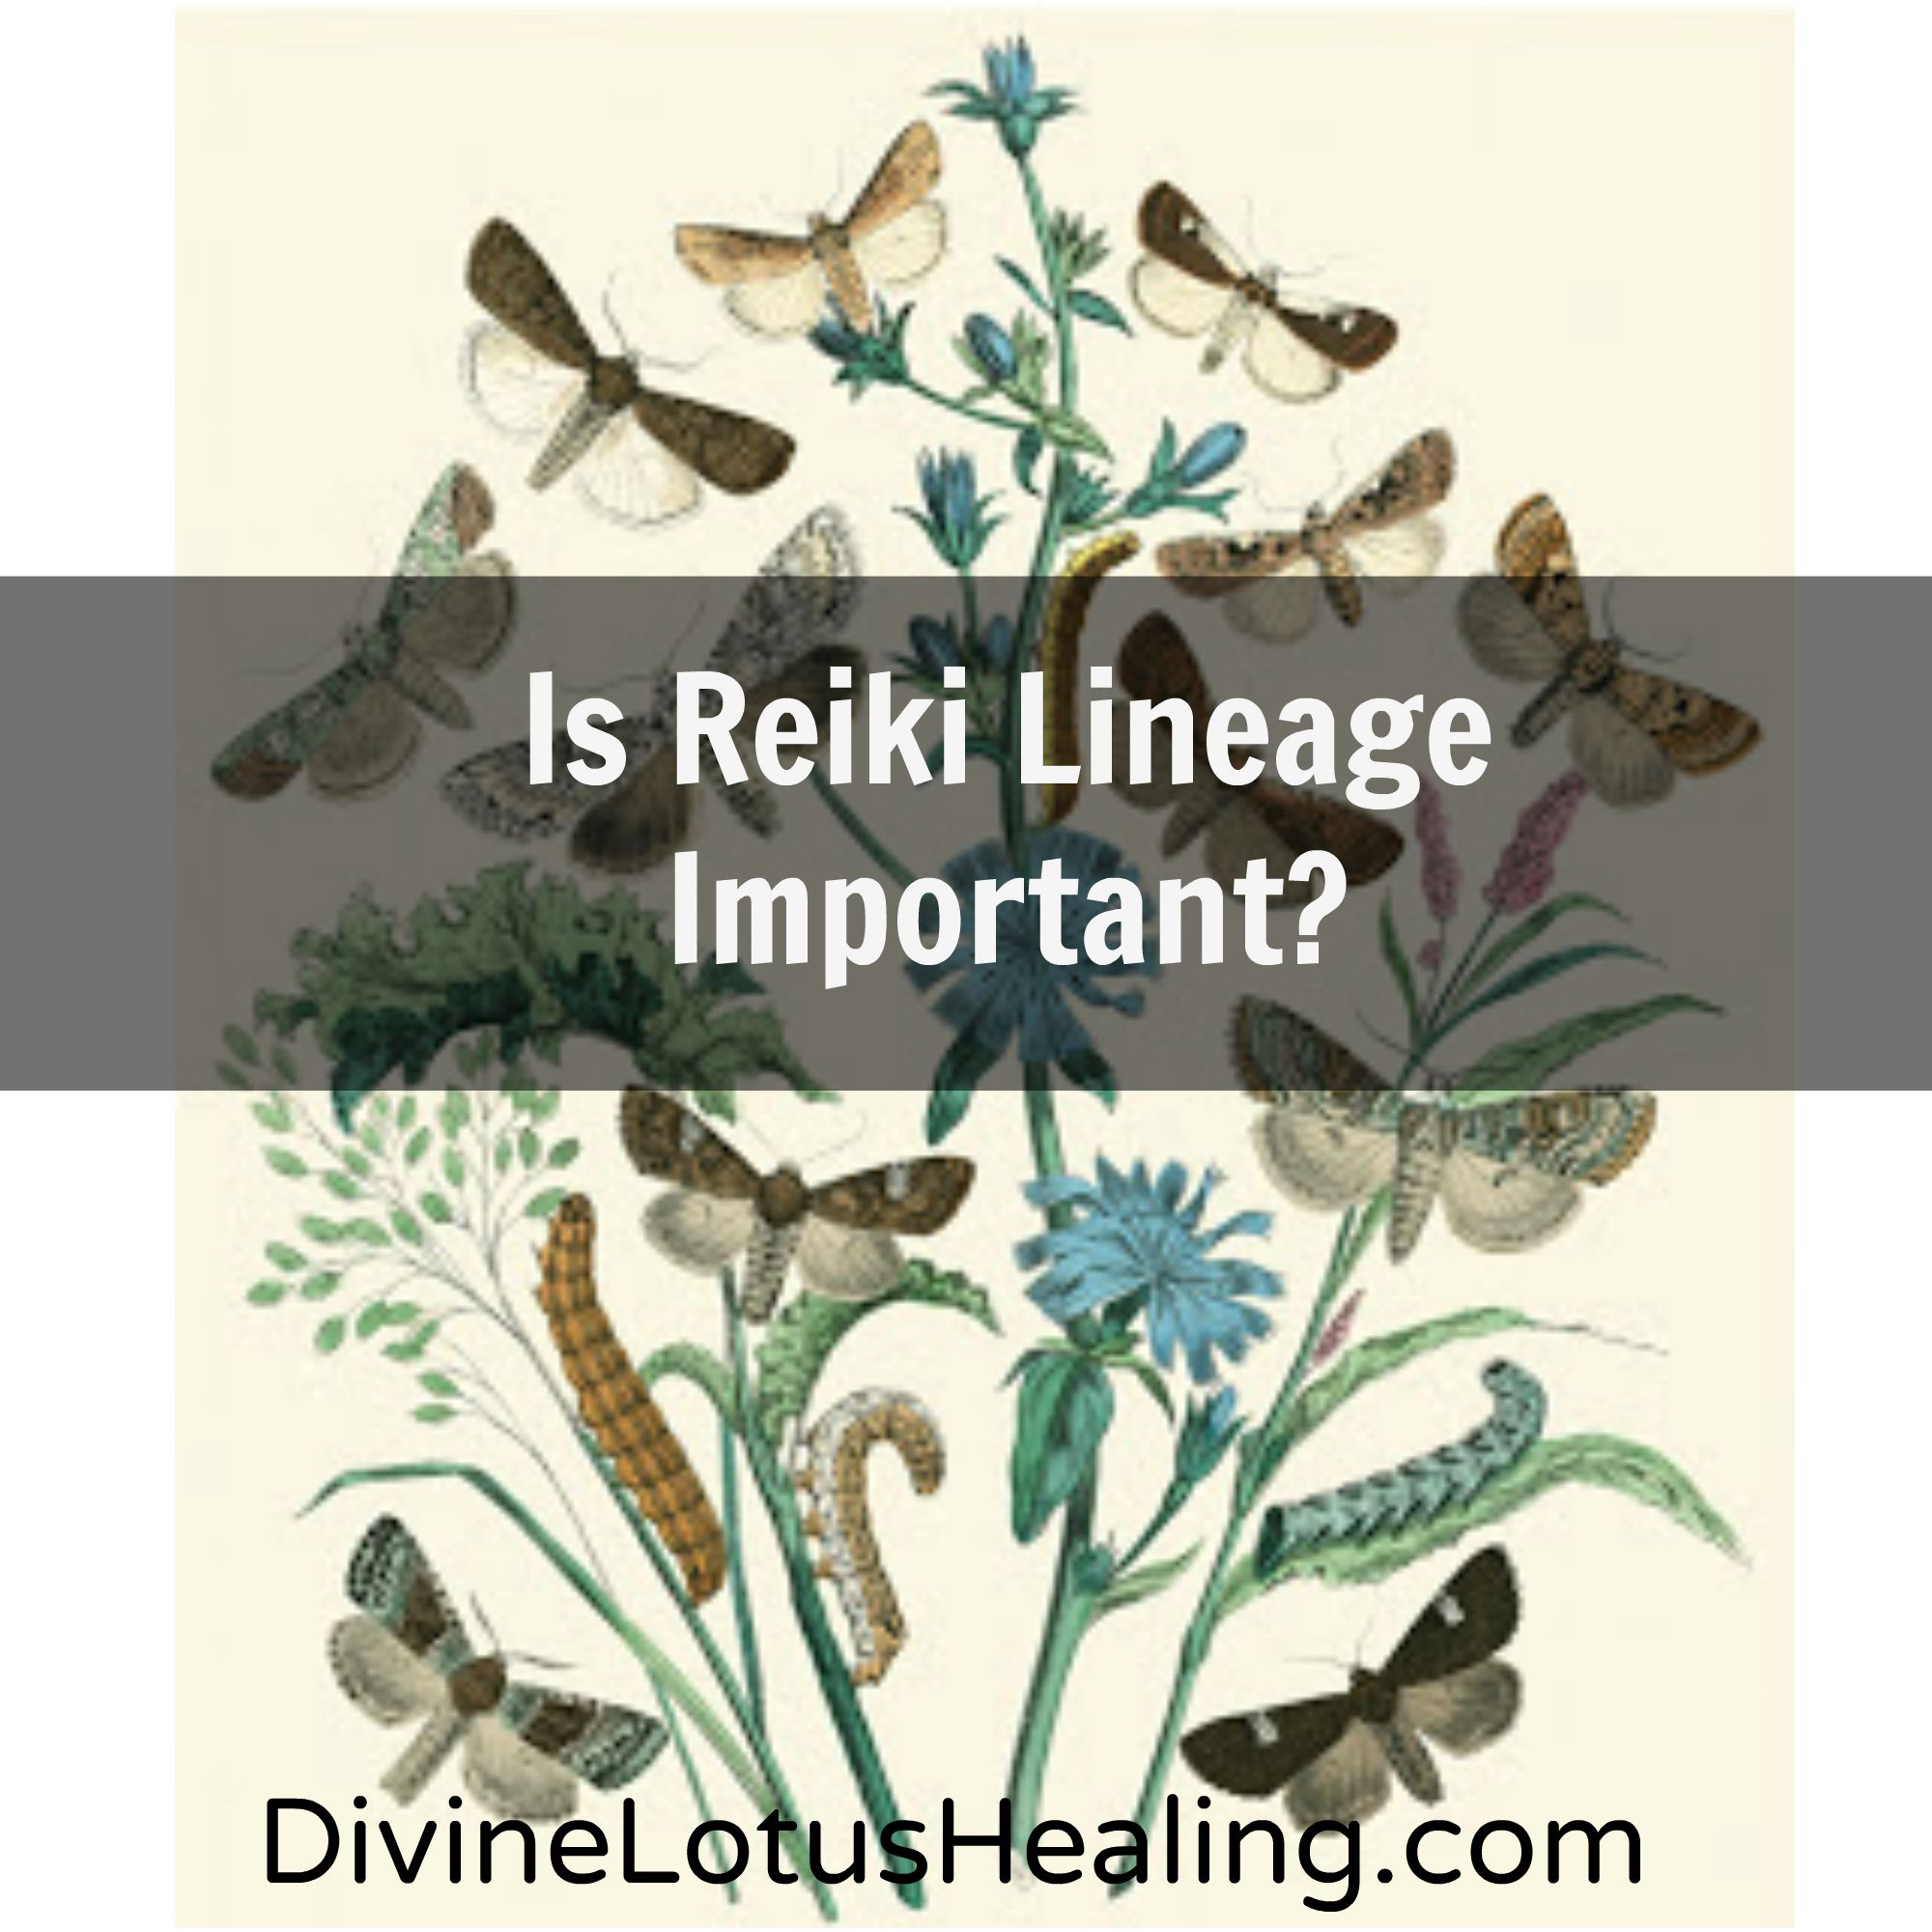 Divine Lotus Healing | Is Reiki Lineage Important